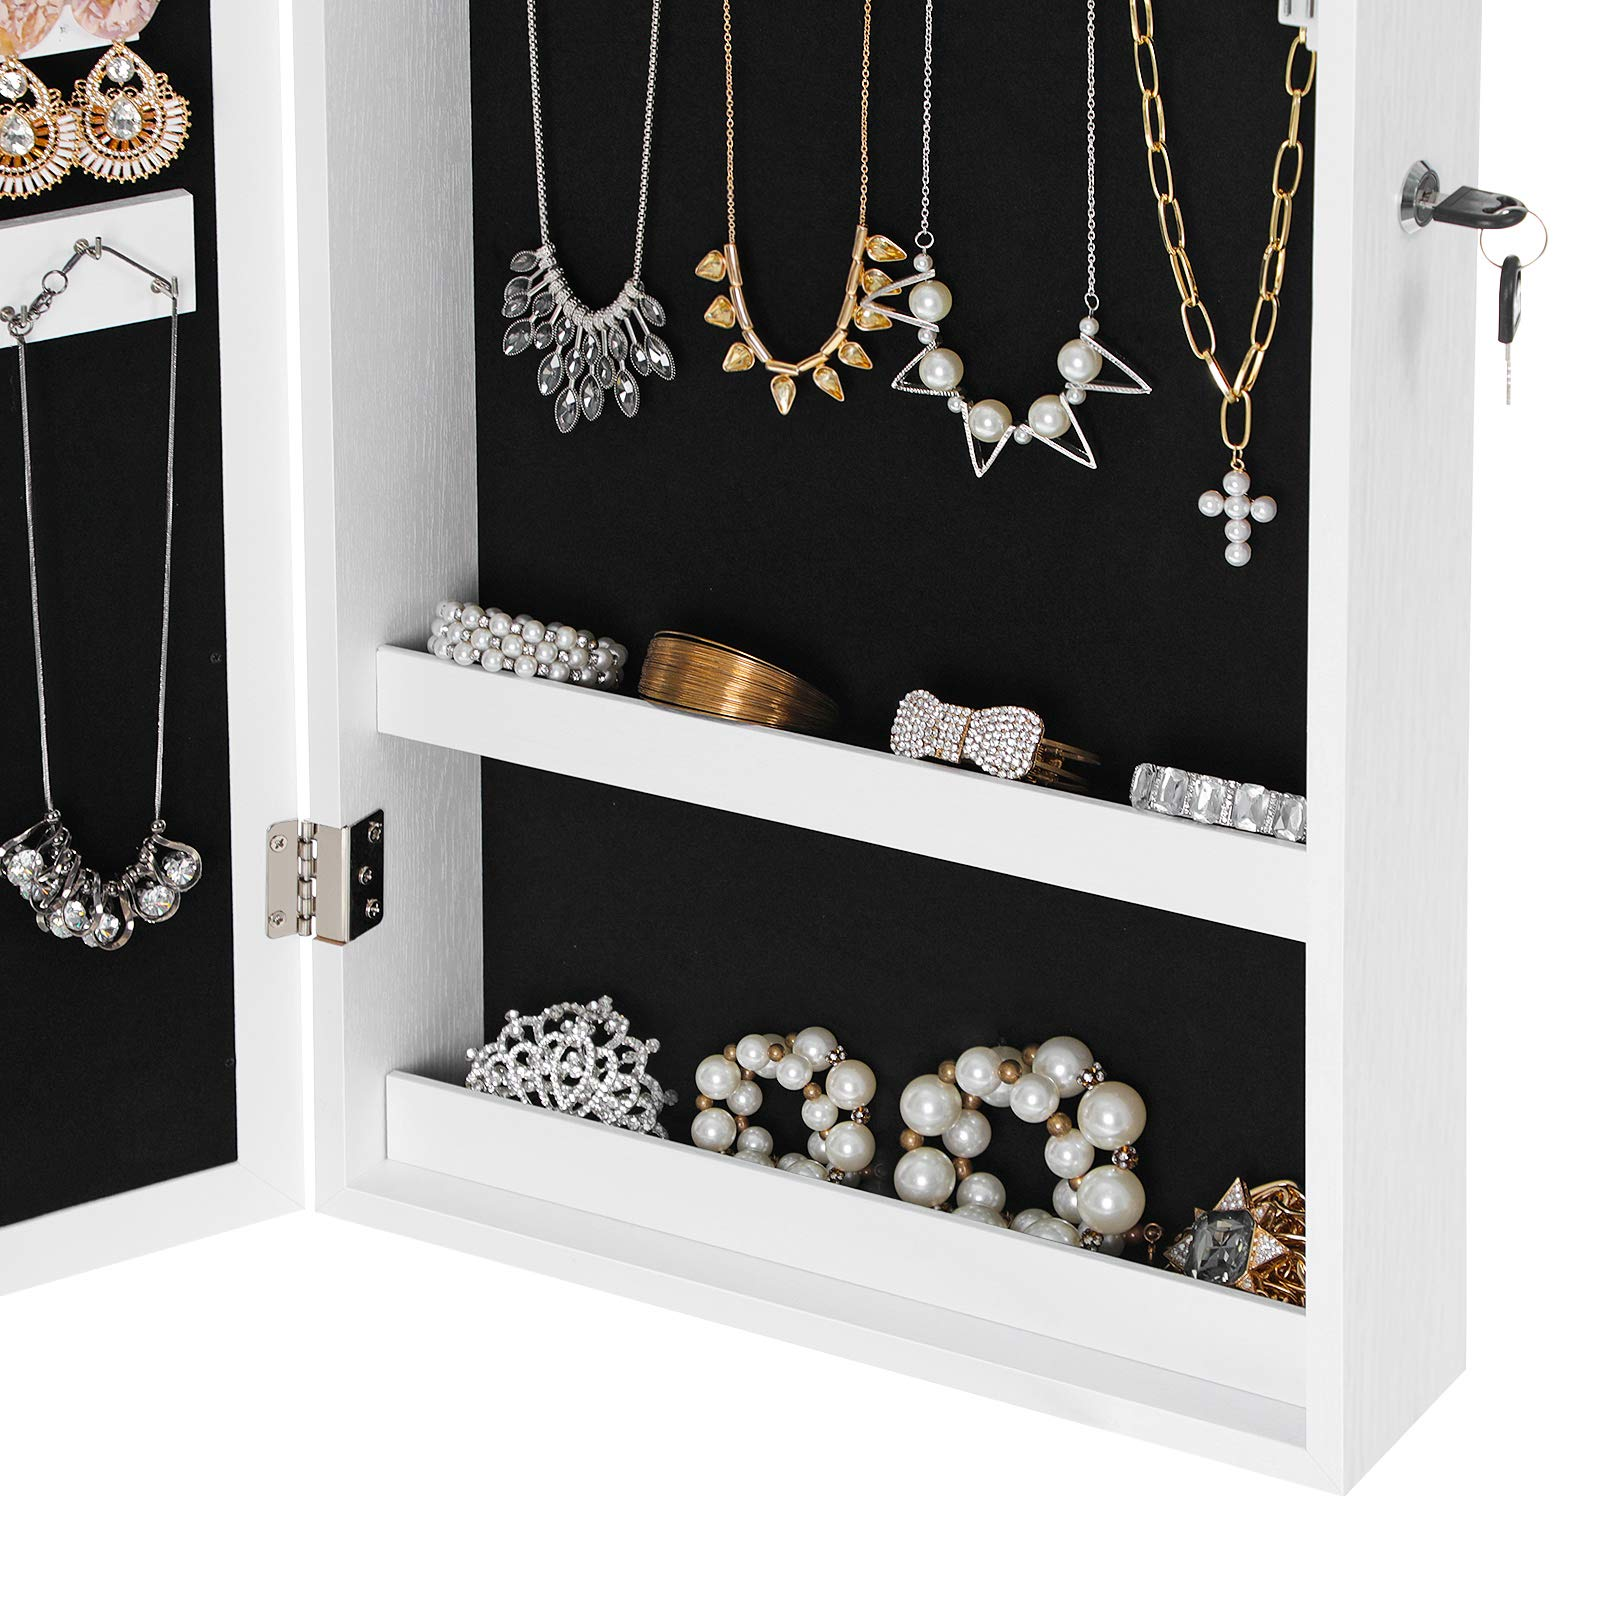 SONGMICS Lockable Jewelry Cabinet Armoire with Mirror, Wall-Mounted Space Saving Jewelry Storage Organizer White UJJC51WT by SONGMICS (Image #6)